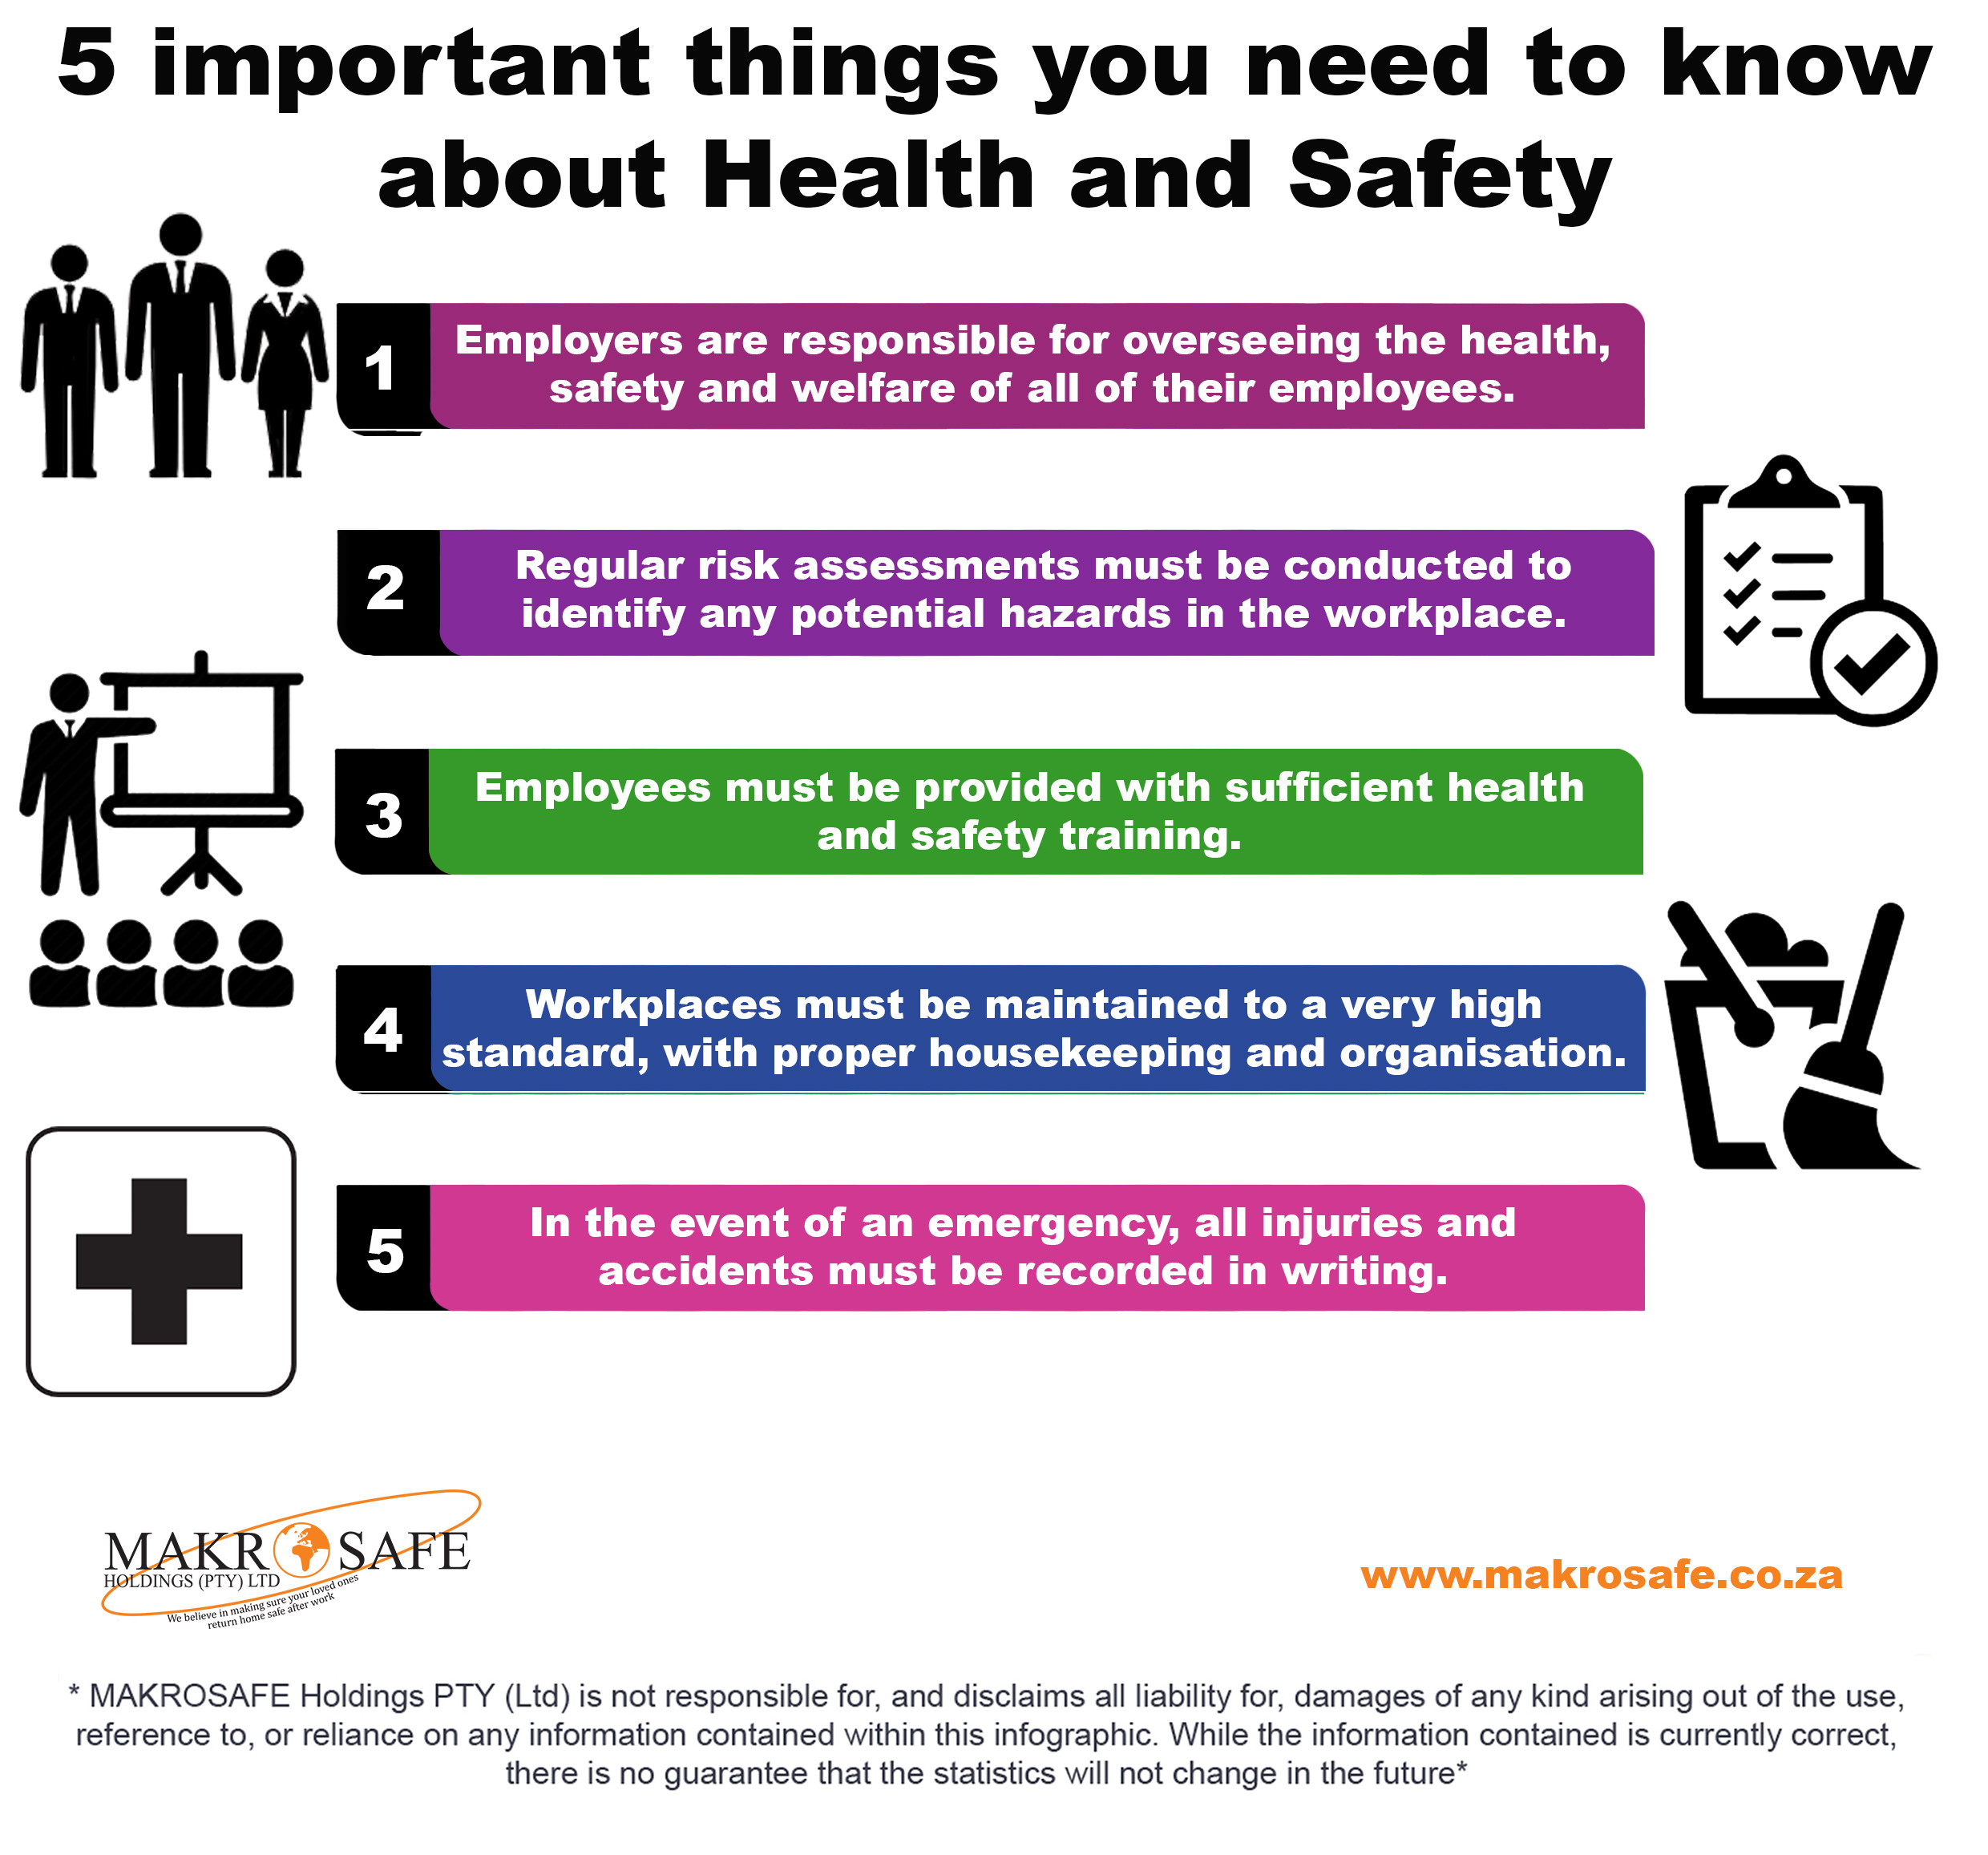 5 important things you need to know about Health and Safety